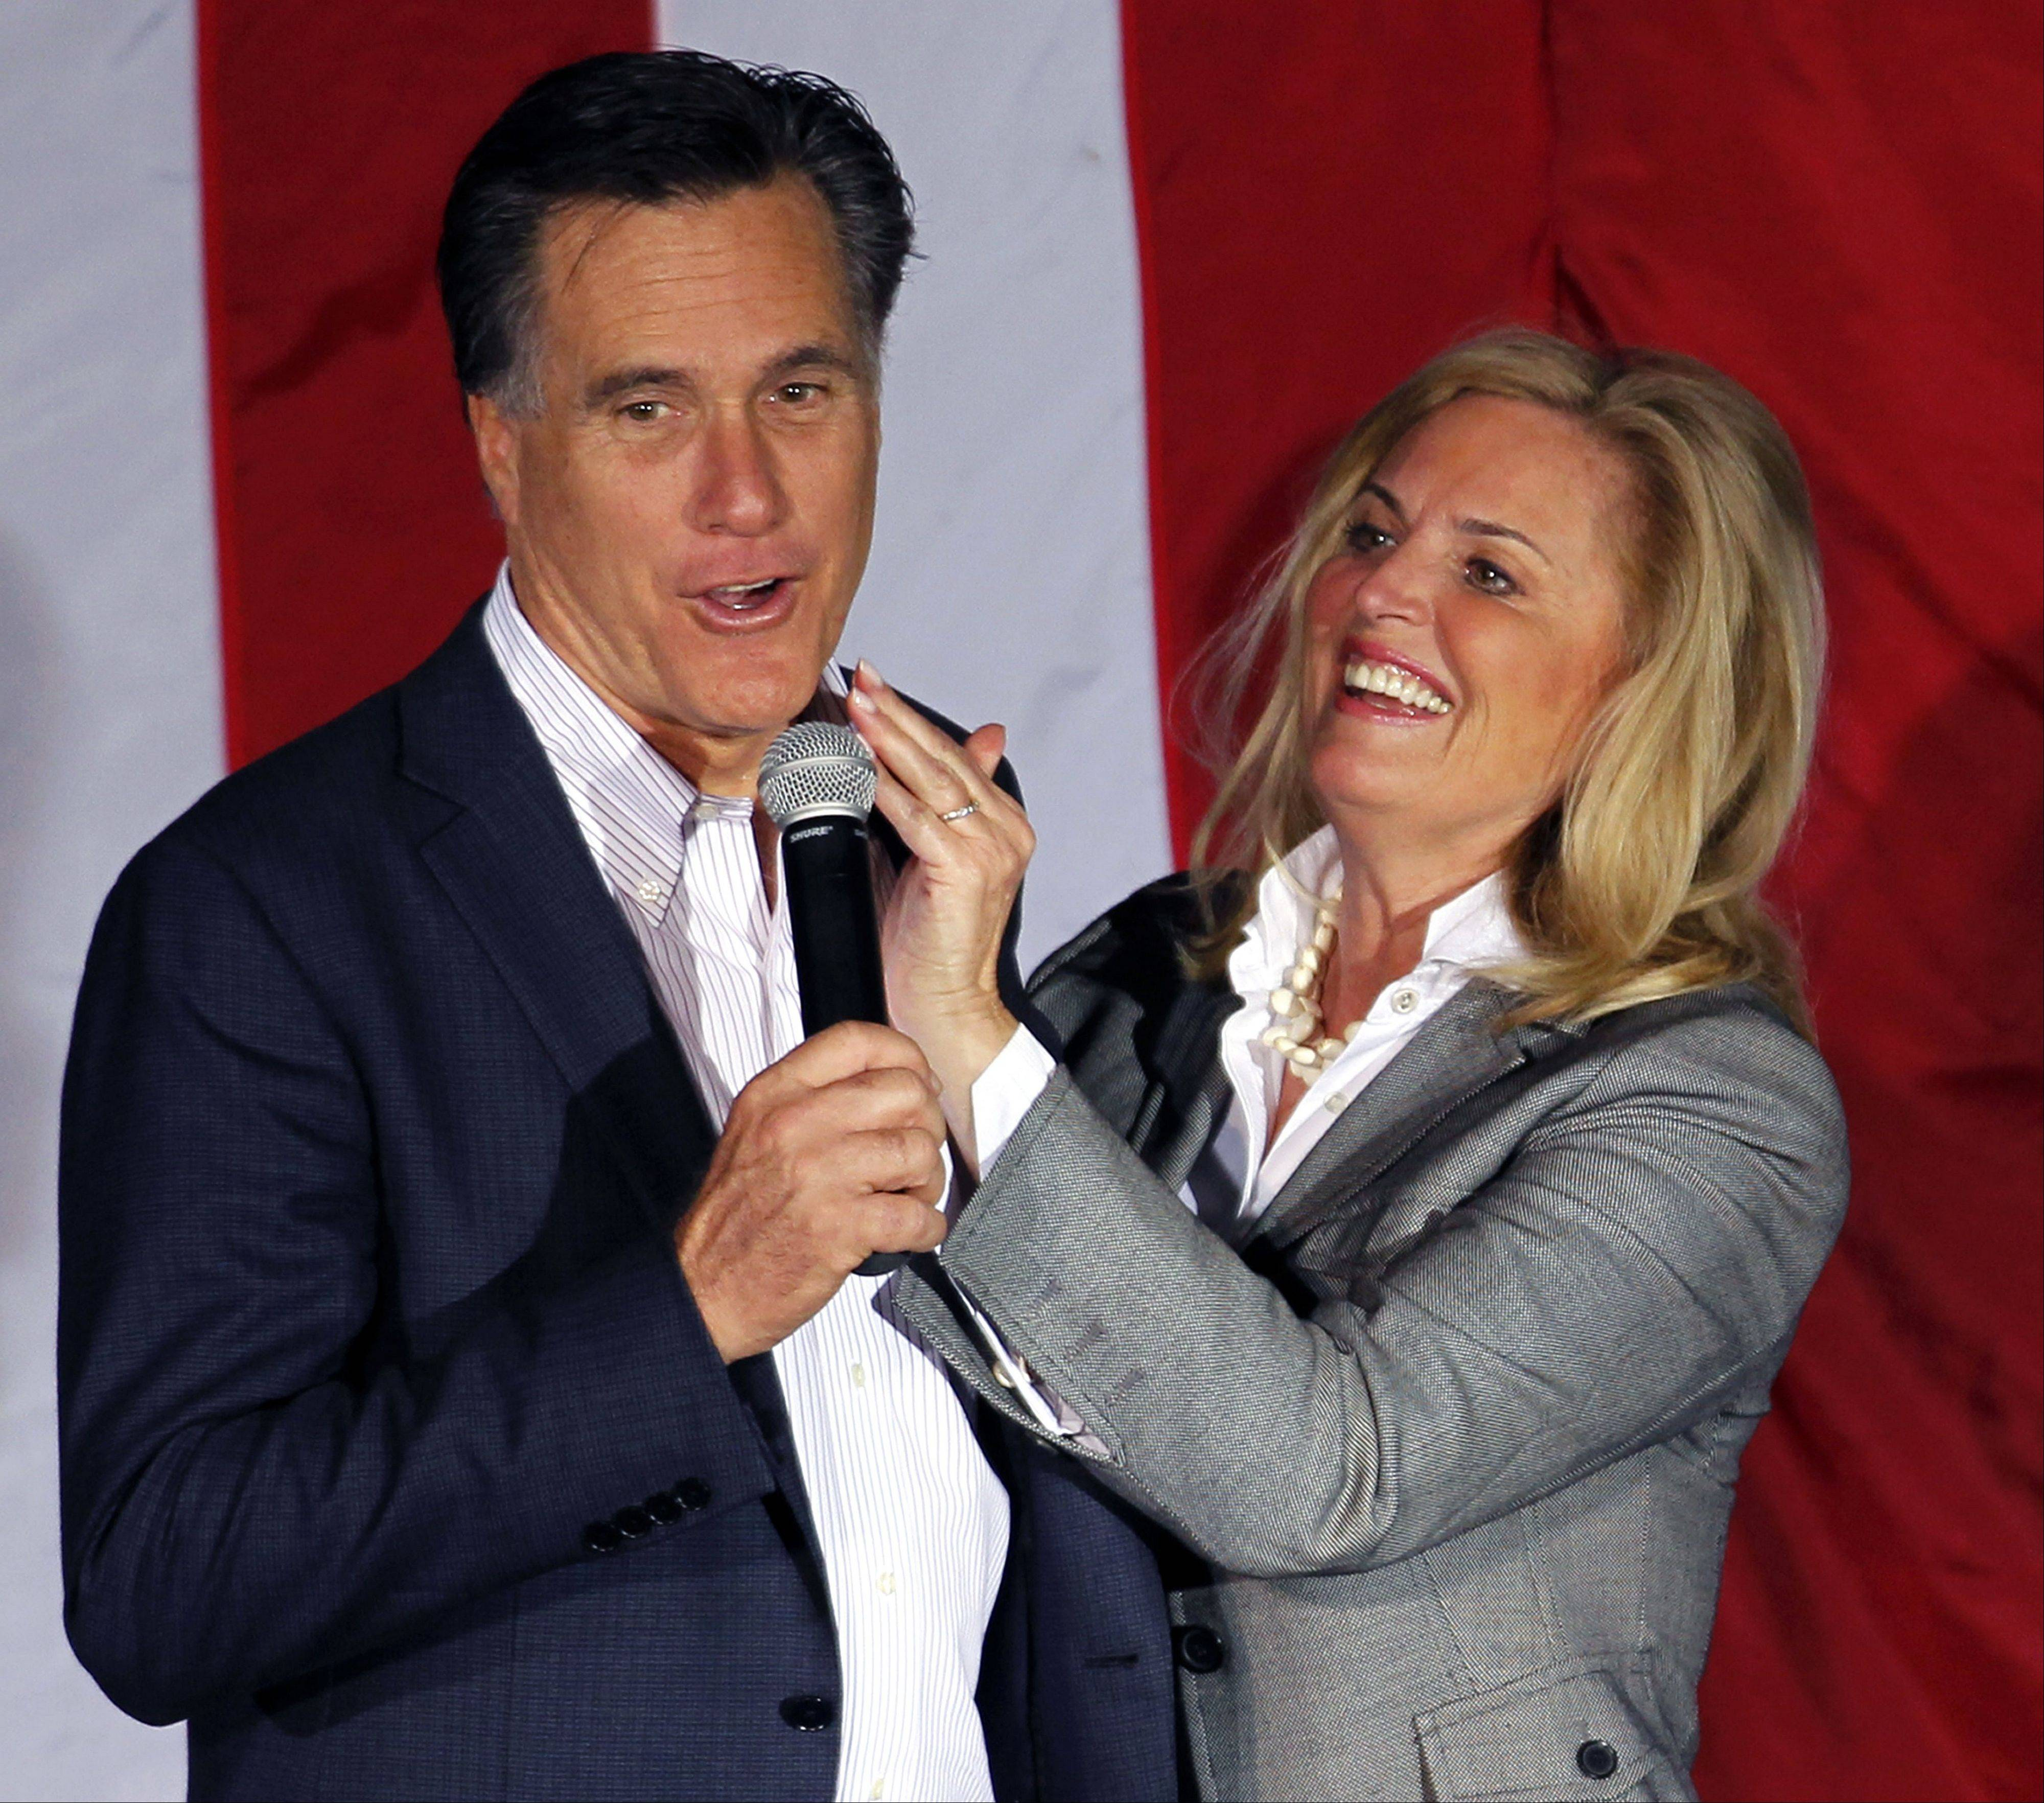 In this March 5, 2012, file photo, Ann Romney, wife of Republican presidential candidate, former Massachusetts Gov. Mitt Romney, wipes lipstick off his face after kissing him at a campaign rally in Zanesville, Ohio.